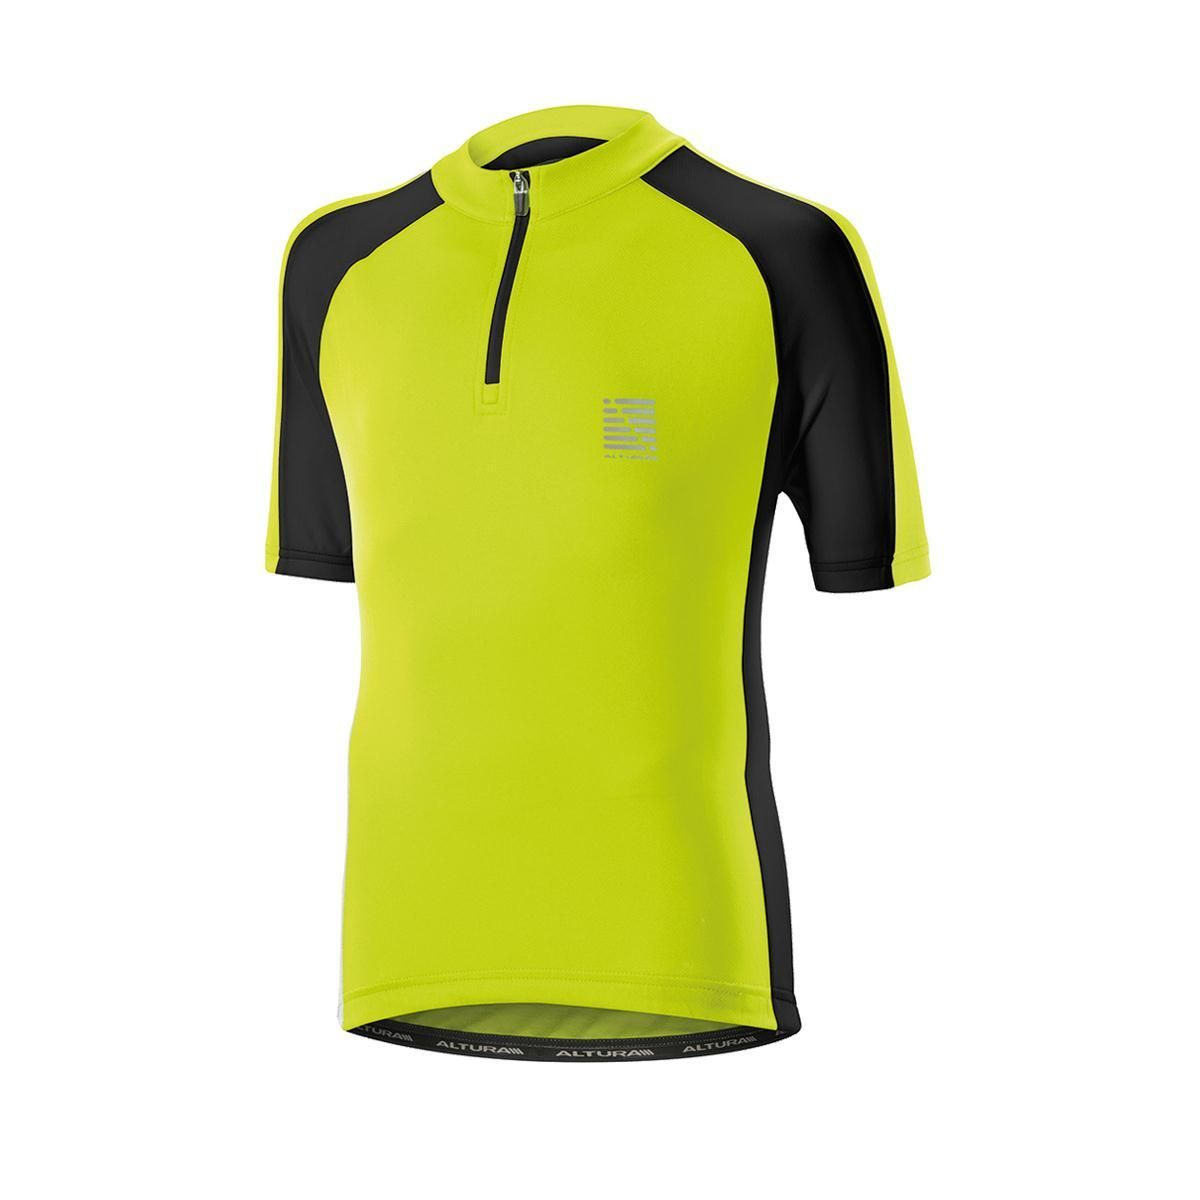 ALTURA Childrens Sprint Short Sleeve Jersey Yellow-Black 7-9 Years - A  classic 5d843bf45